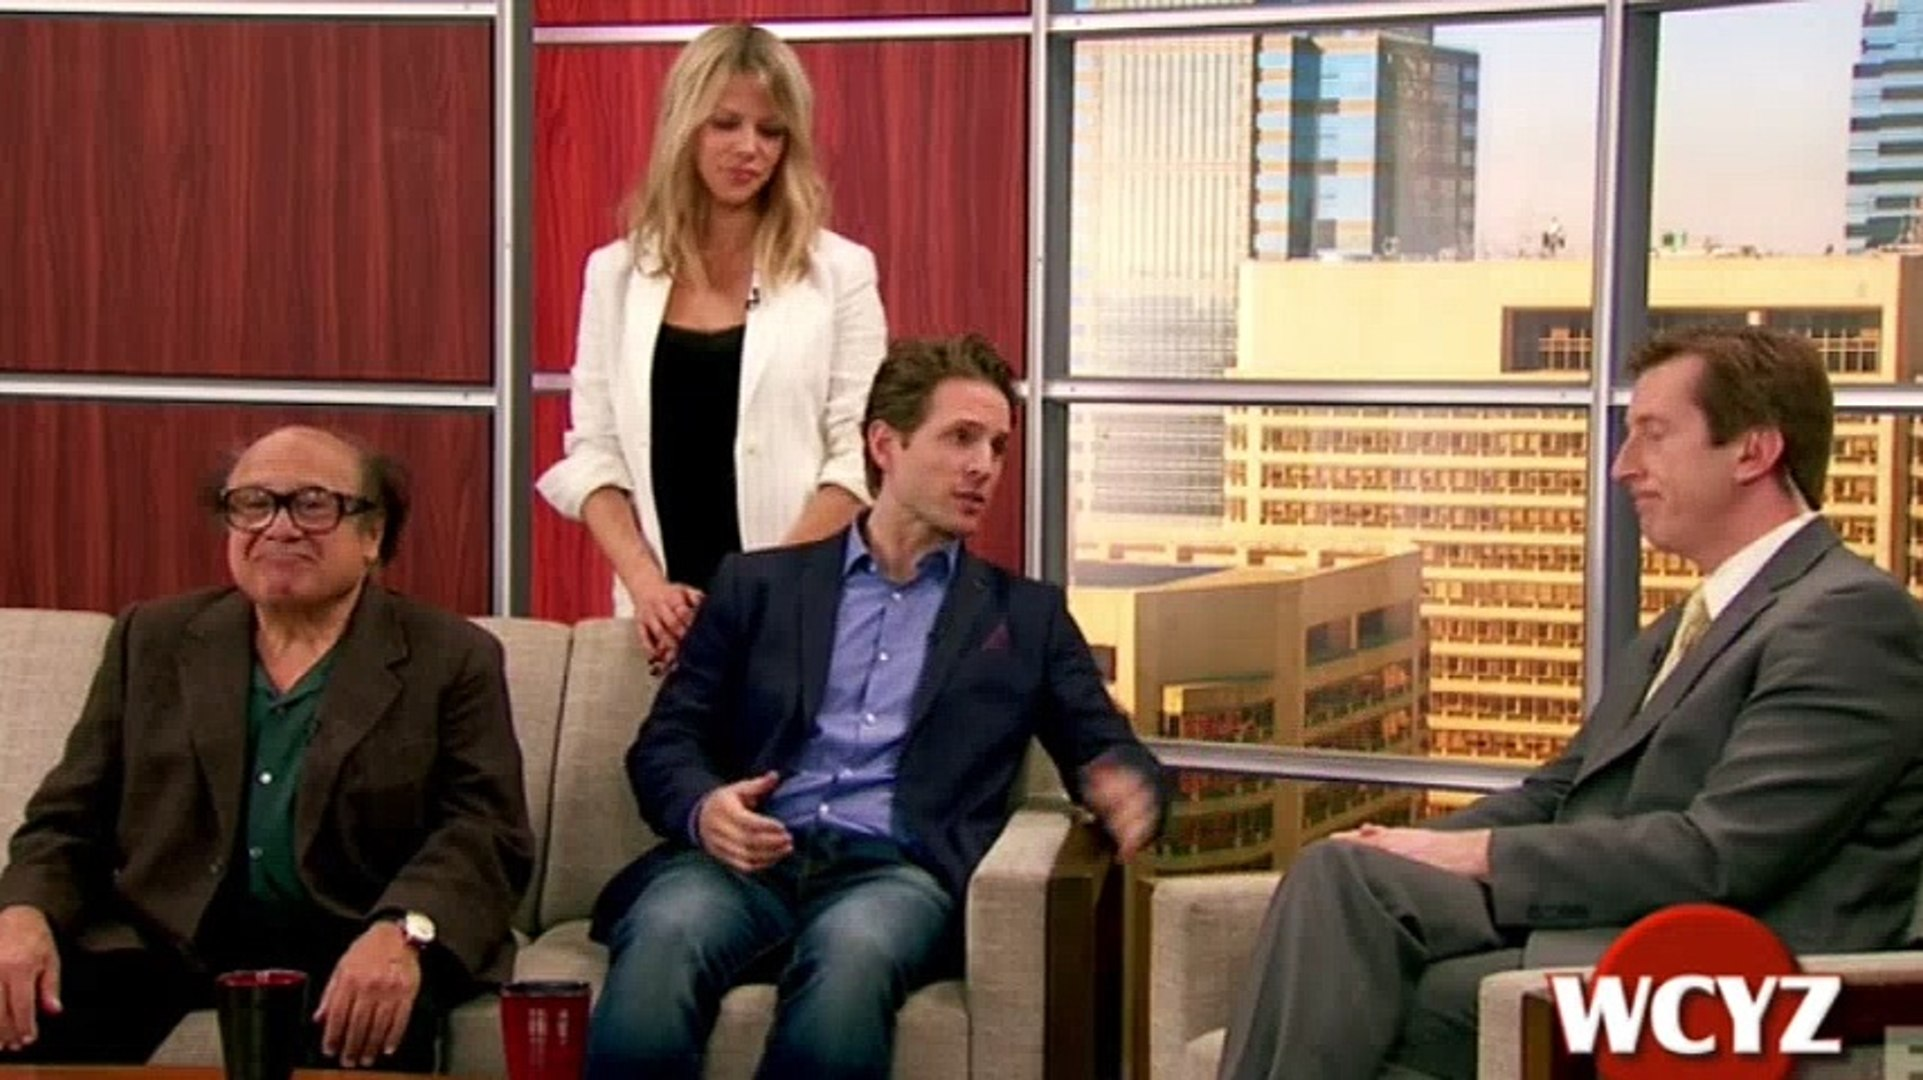 It S Always Sunny In Philadelphia S 12 E 4 Wolf Cola A Public Relations Nightmare